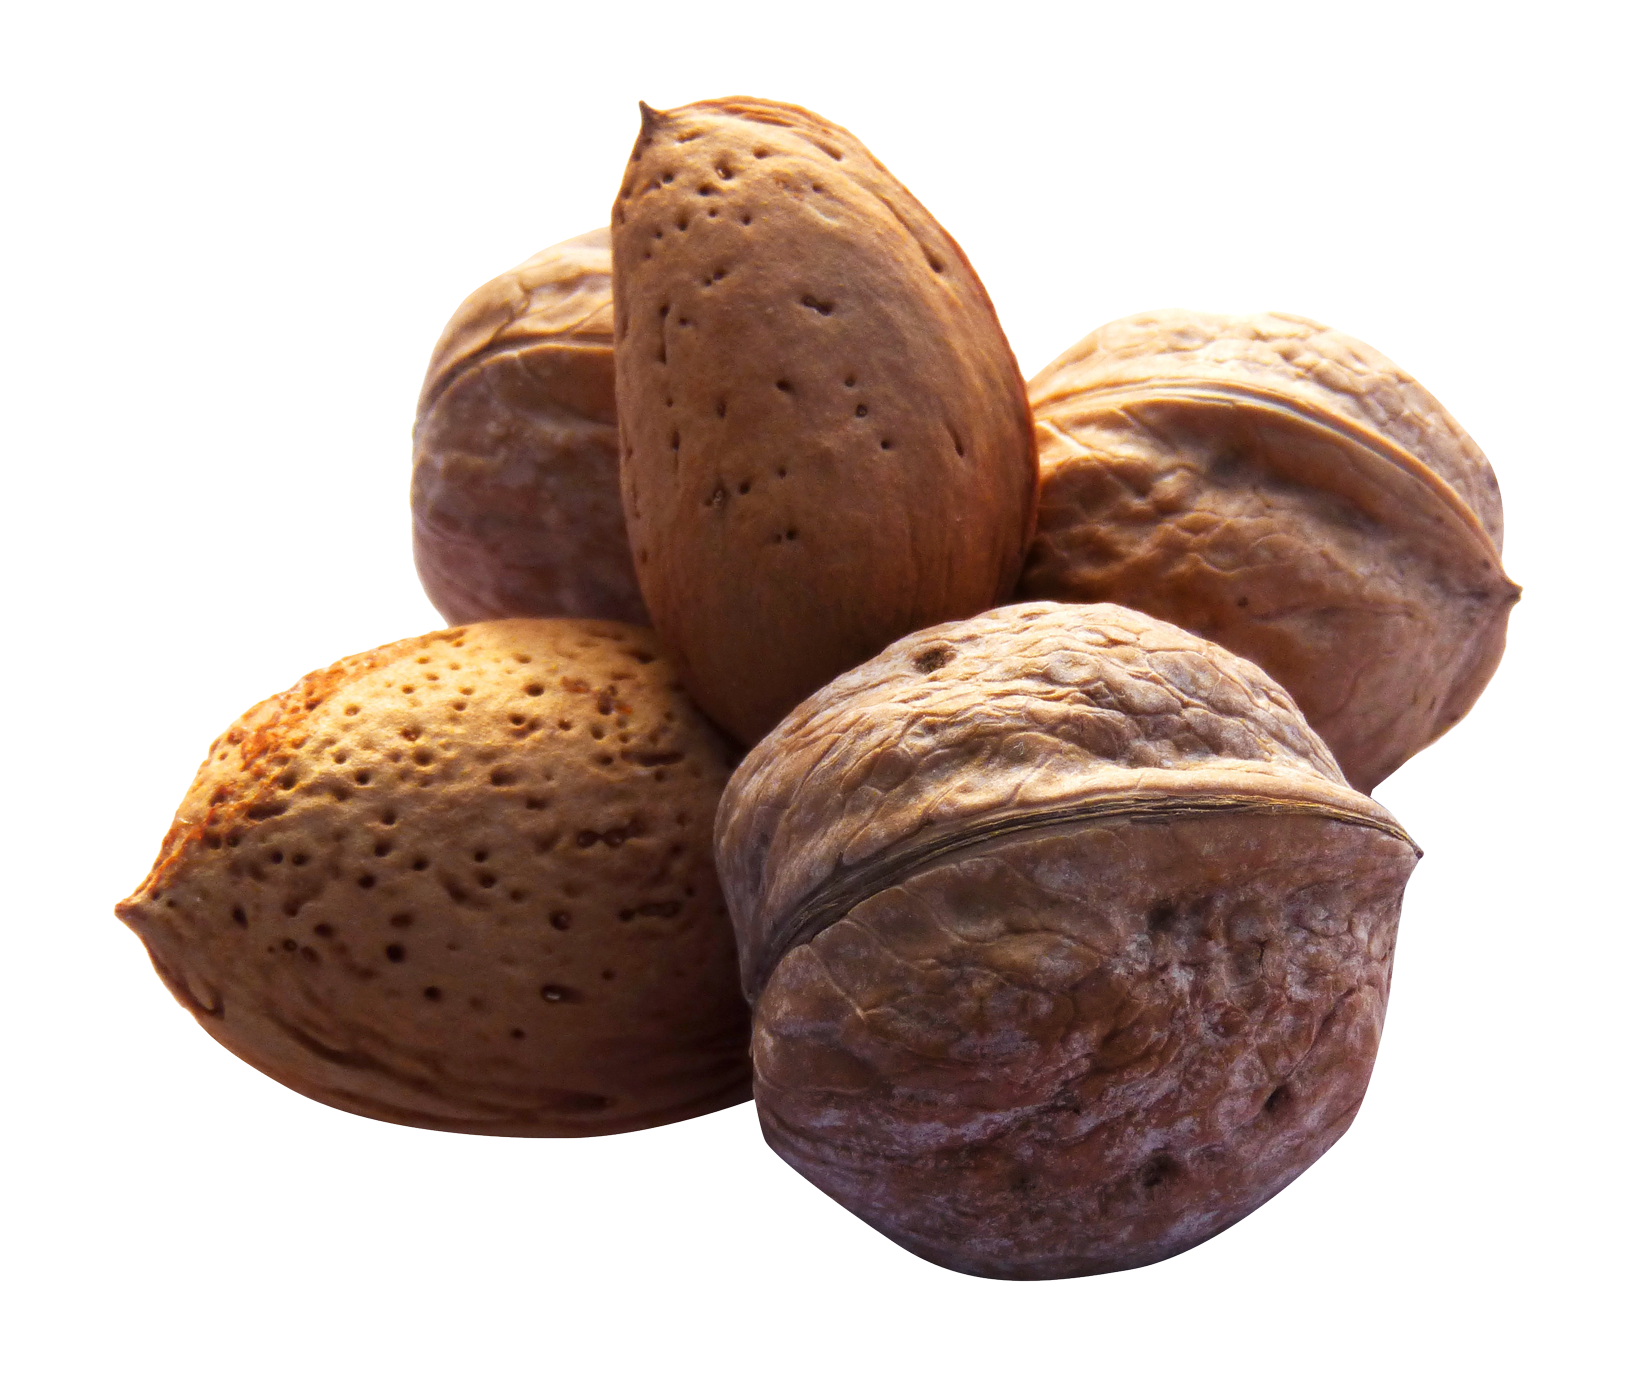 Png nuts. Image purepng free transparent